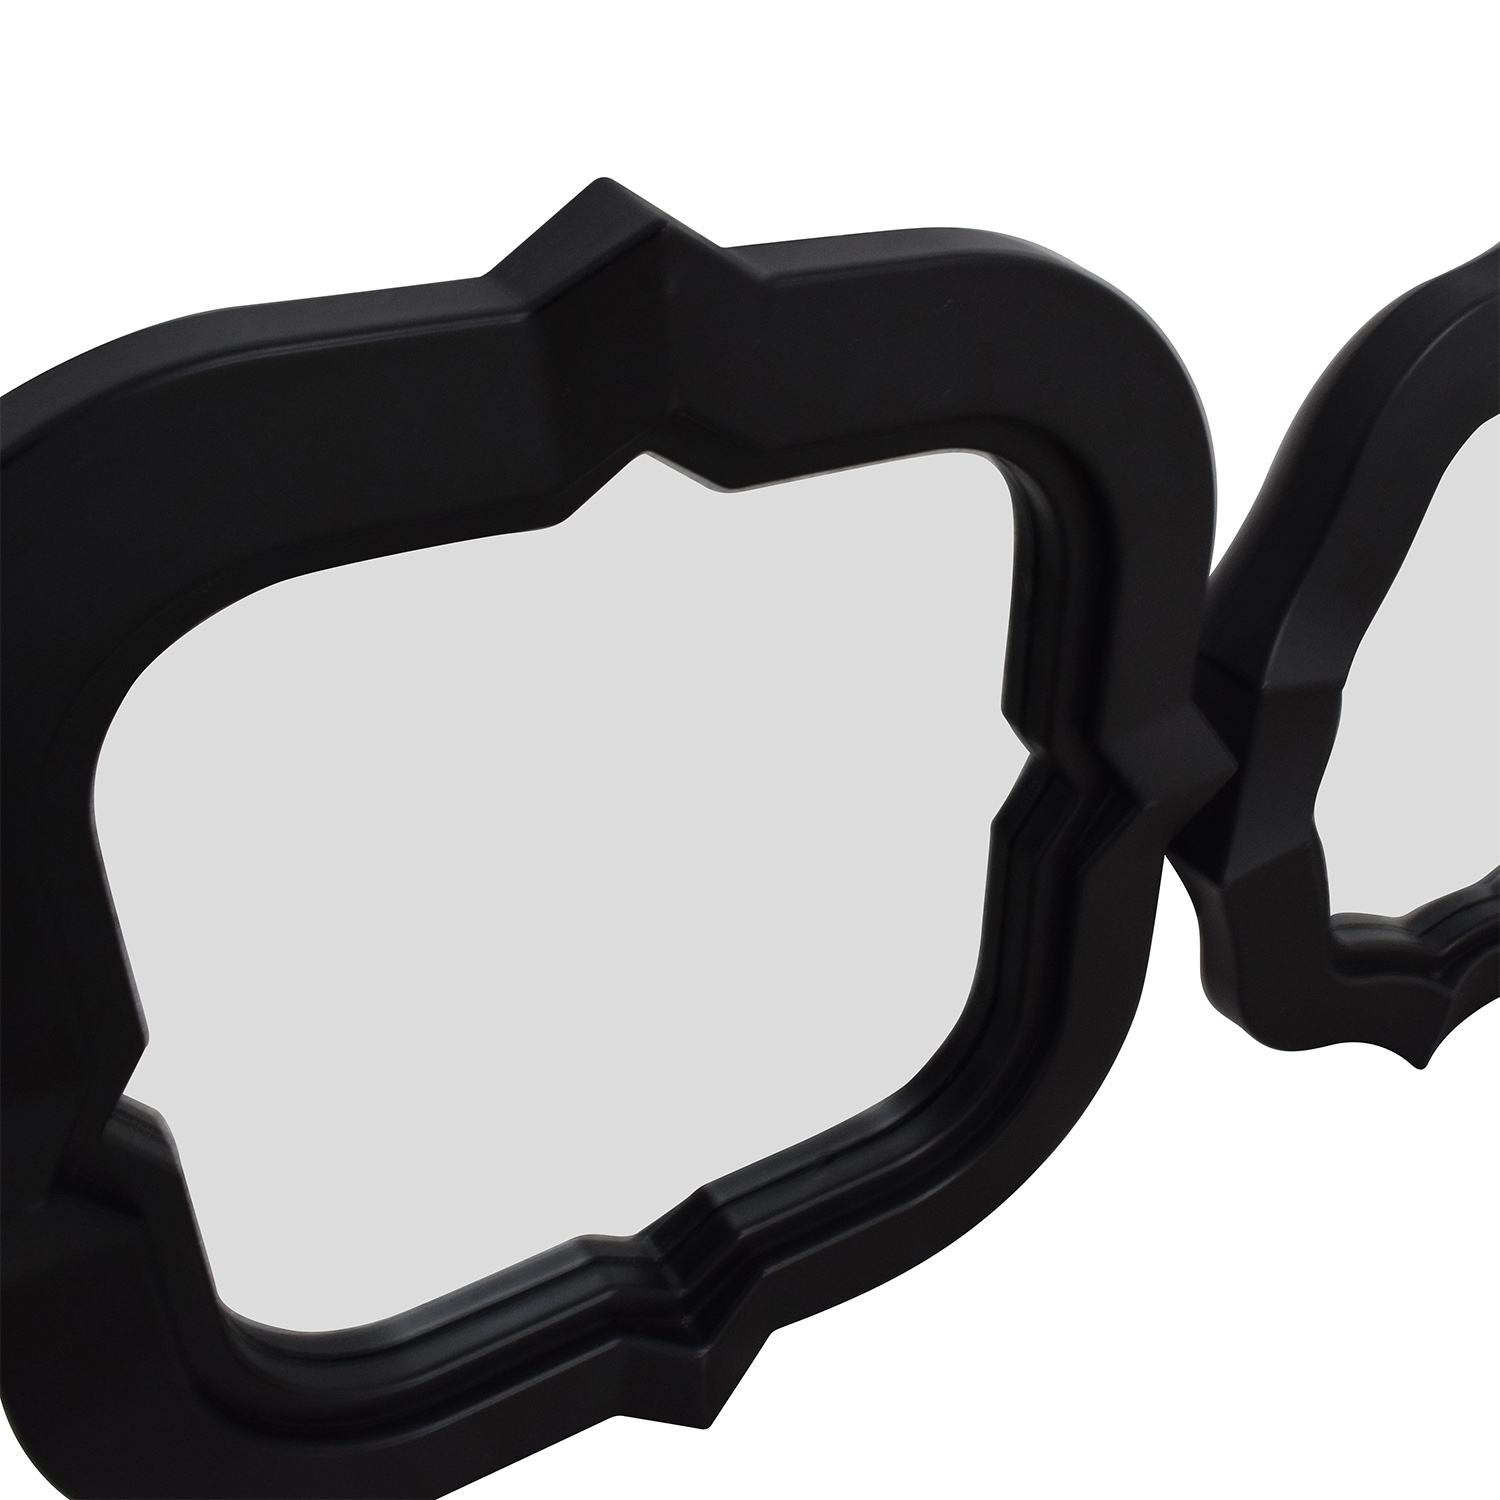 shop Small Decorative Black Mirrors